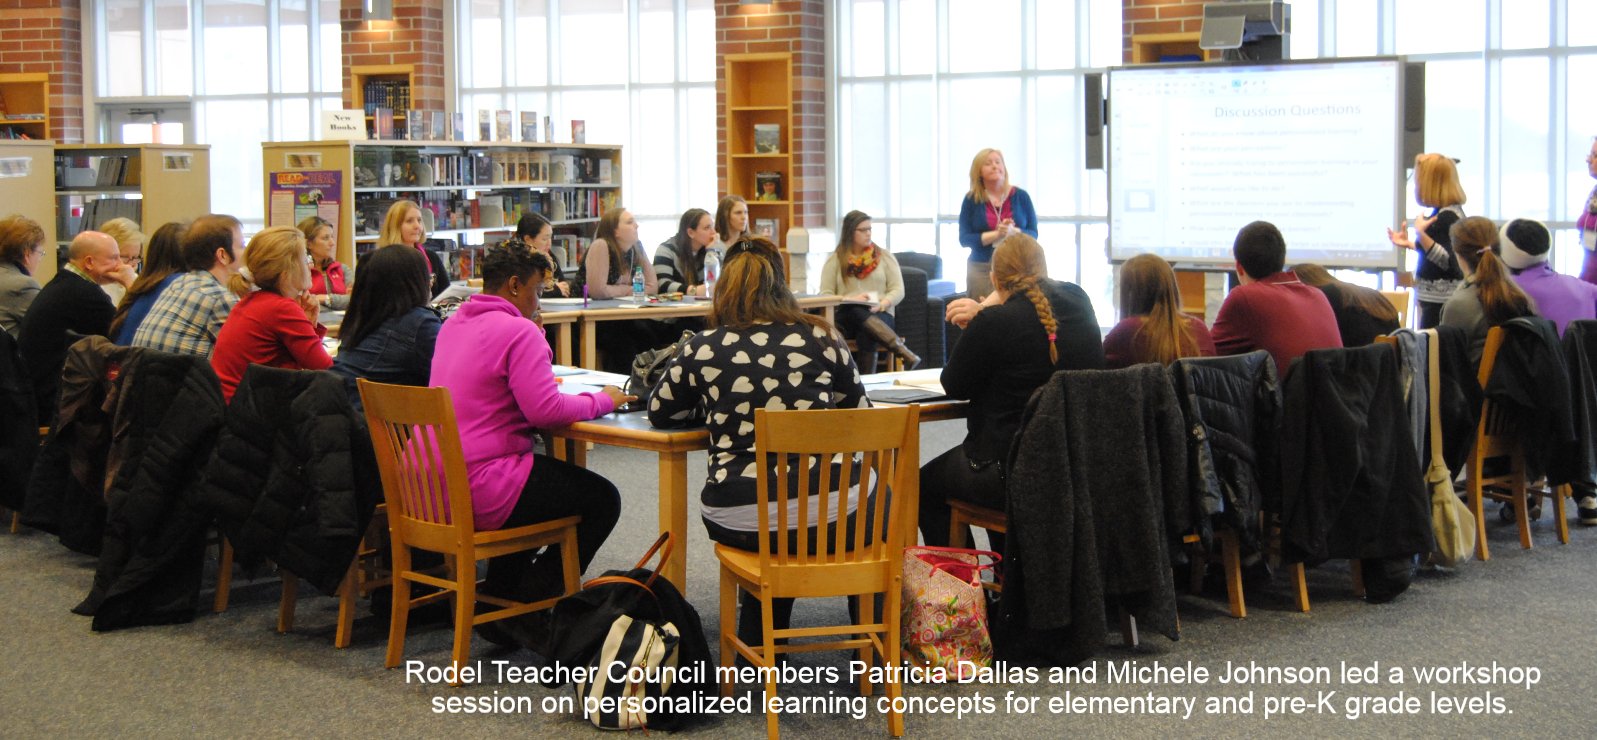 Rodel Teacher Council members Patricia Dallas and Michele Johnson led a workshop session on personalized learning concepts for elementary and pre-K grade levels.